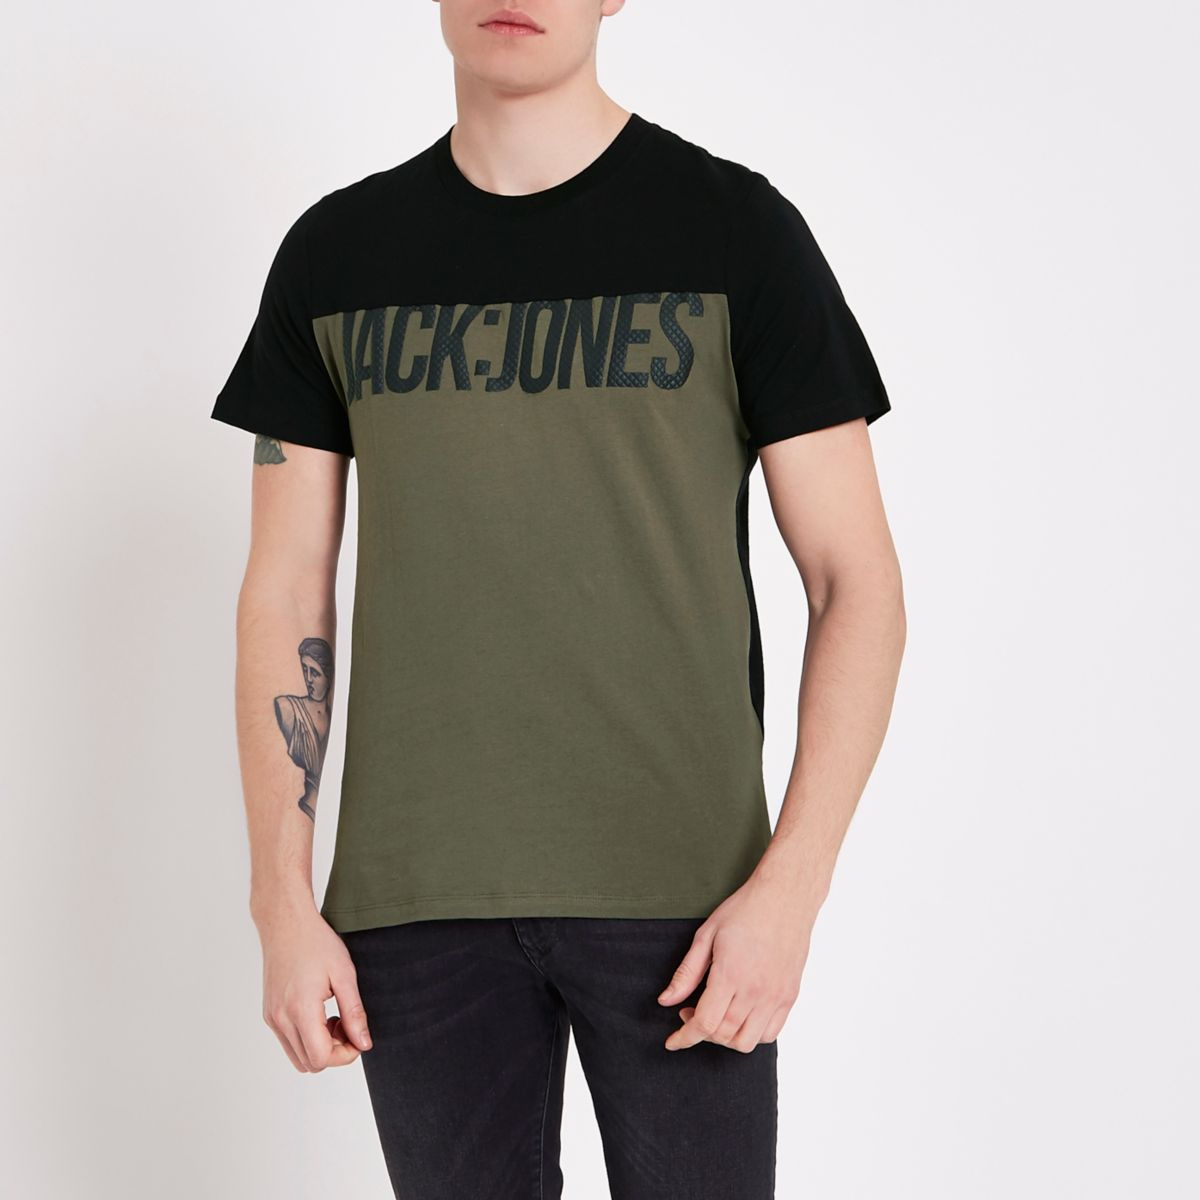 Jack & Jones core black crew neck T-shirt